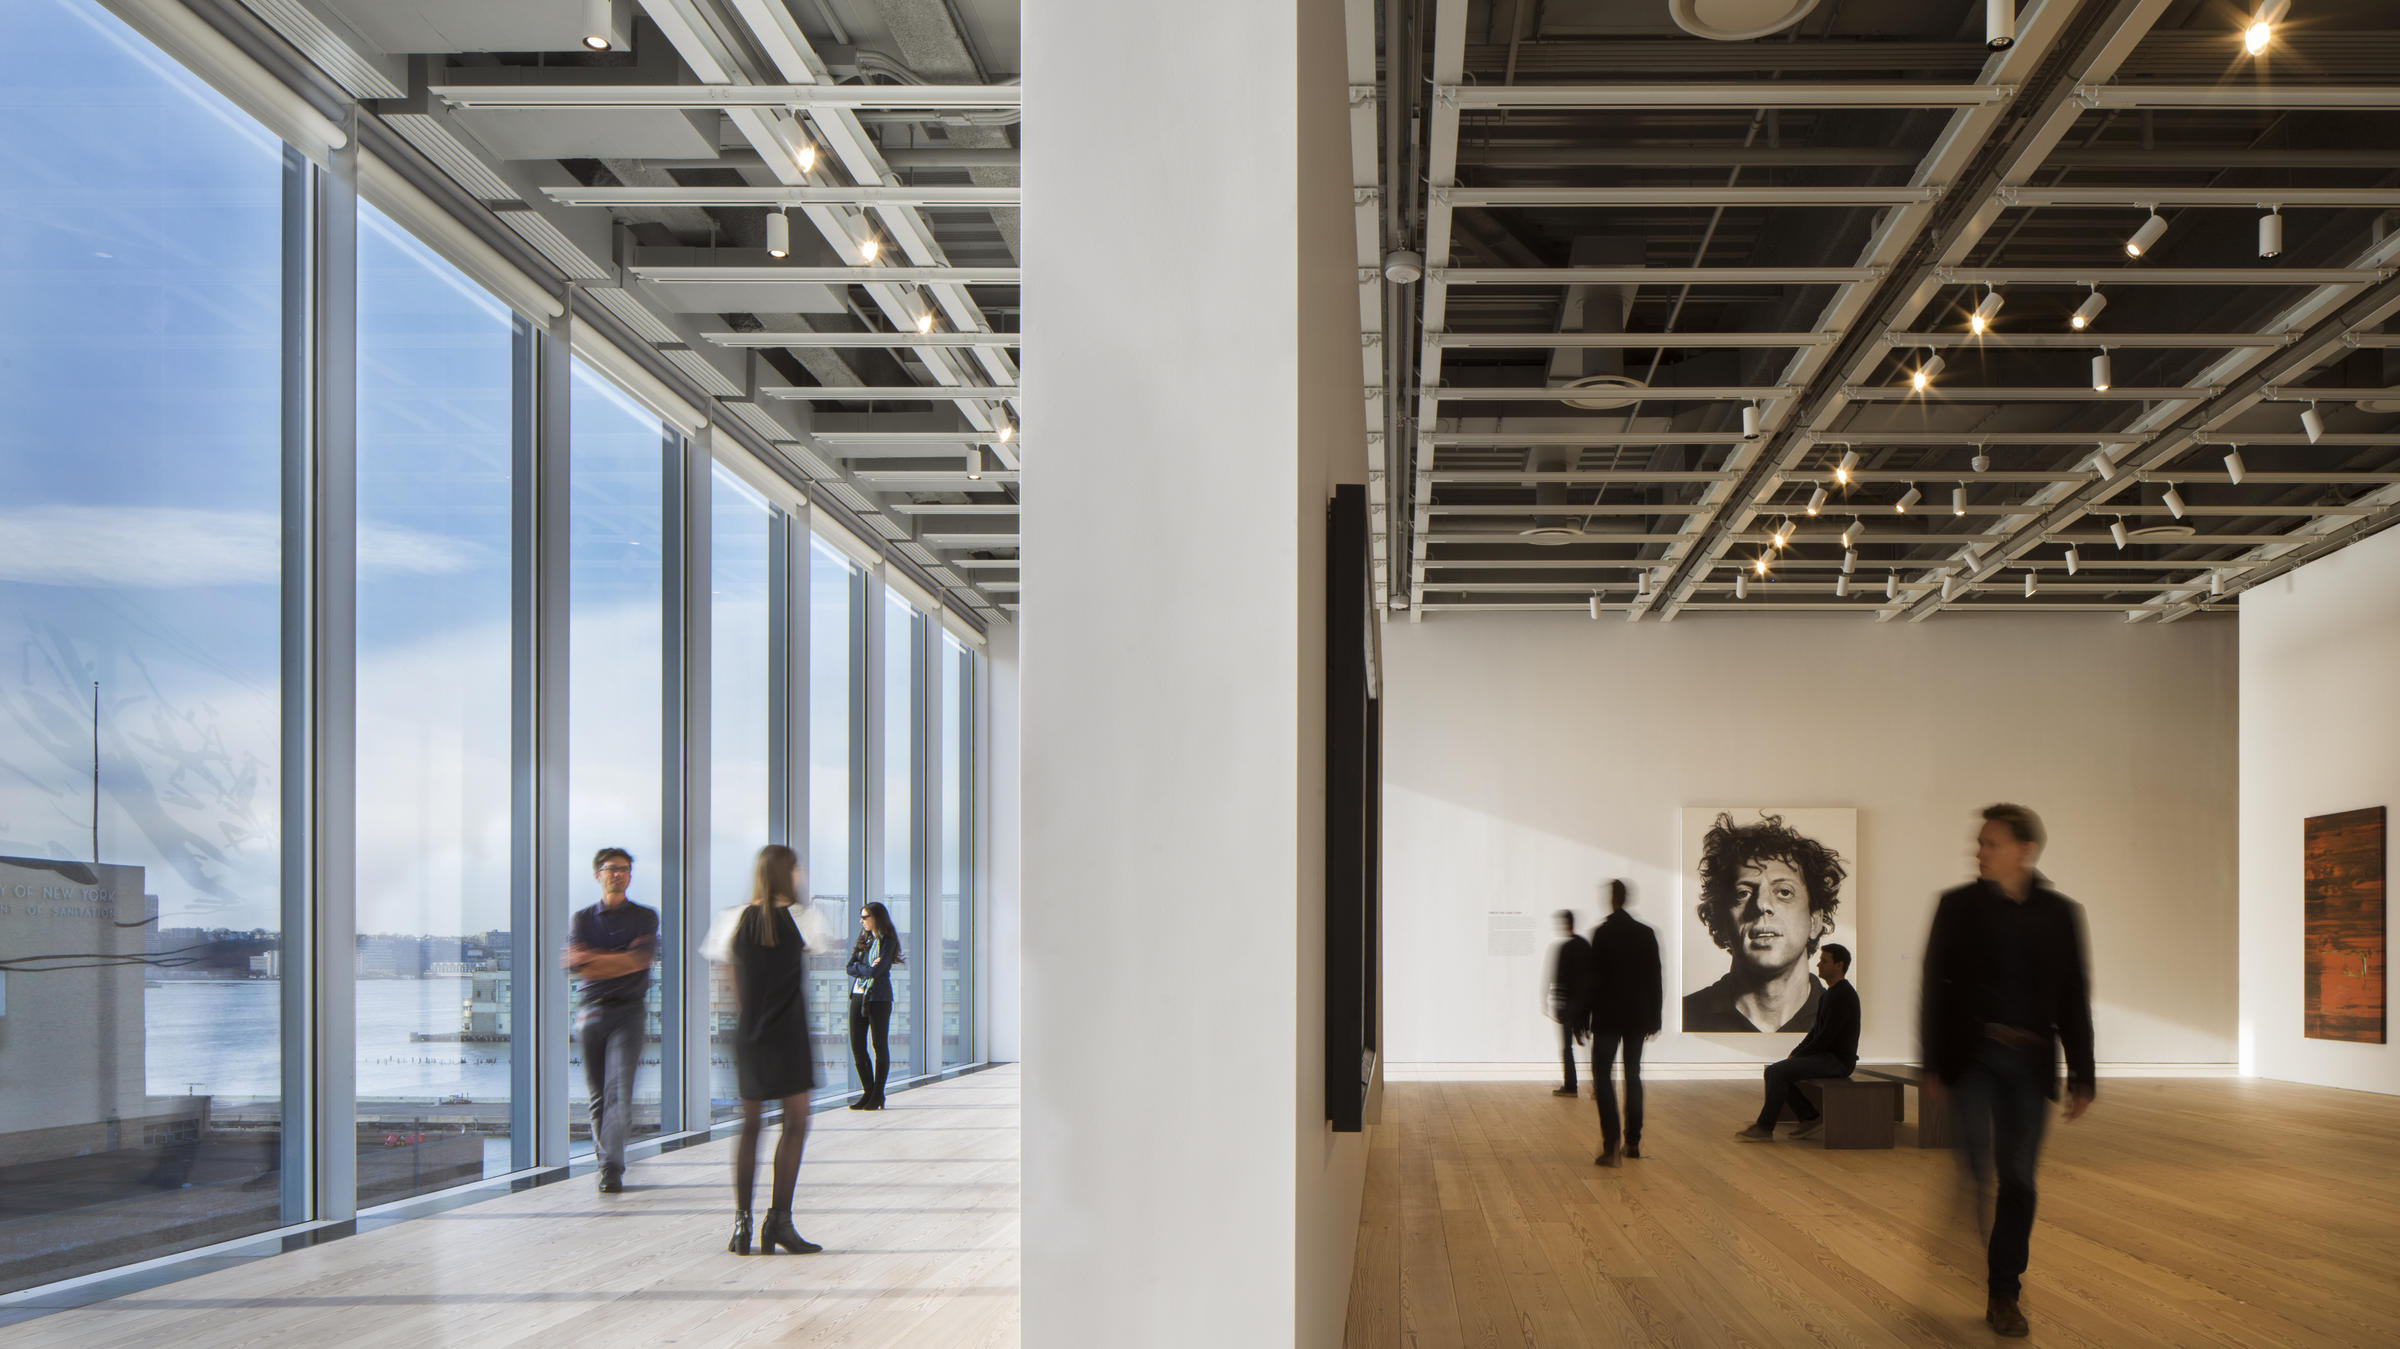 The new building\u0027s window-lined hallways are in stark contrast to the brutalist design of the Whitney\u0027s former home. & Whitney Museum\u0027s New Building Opens Doors (And Walls) To Outside ...